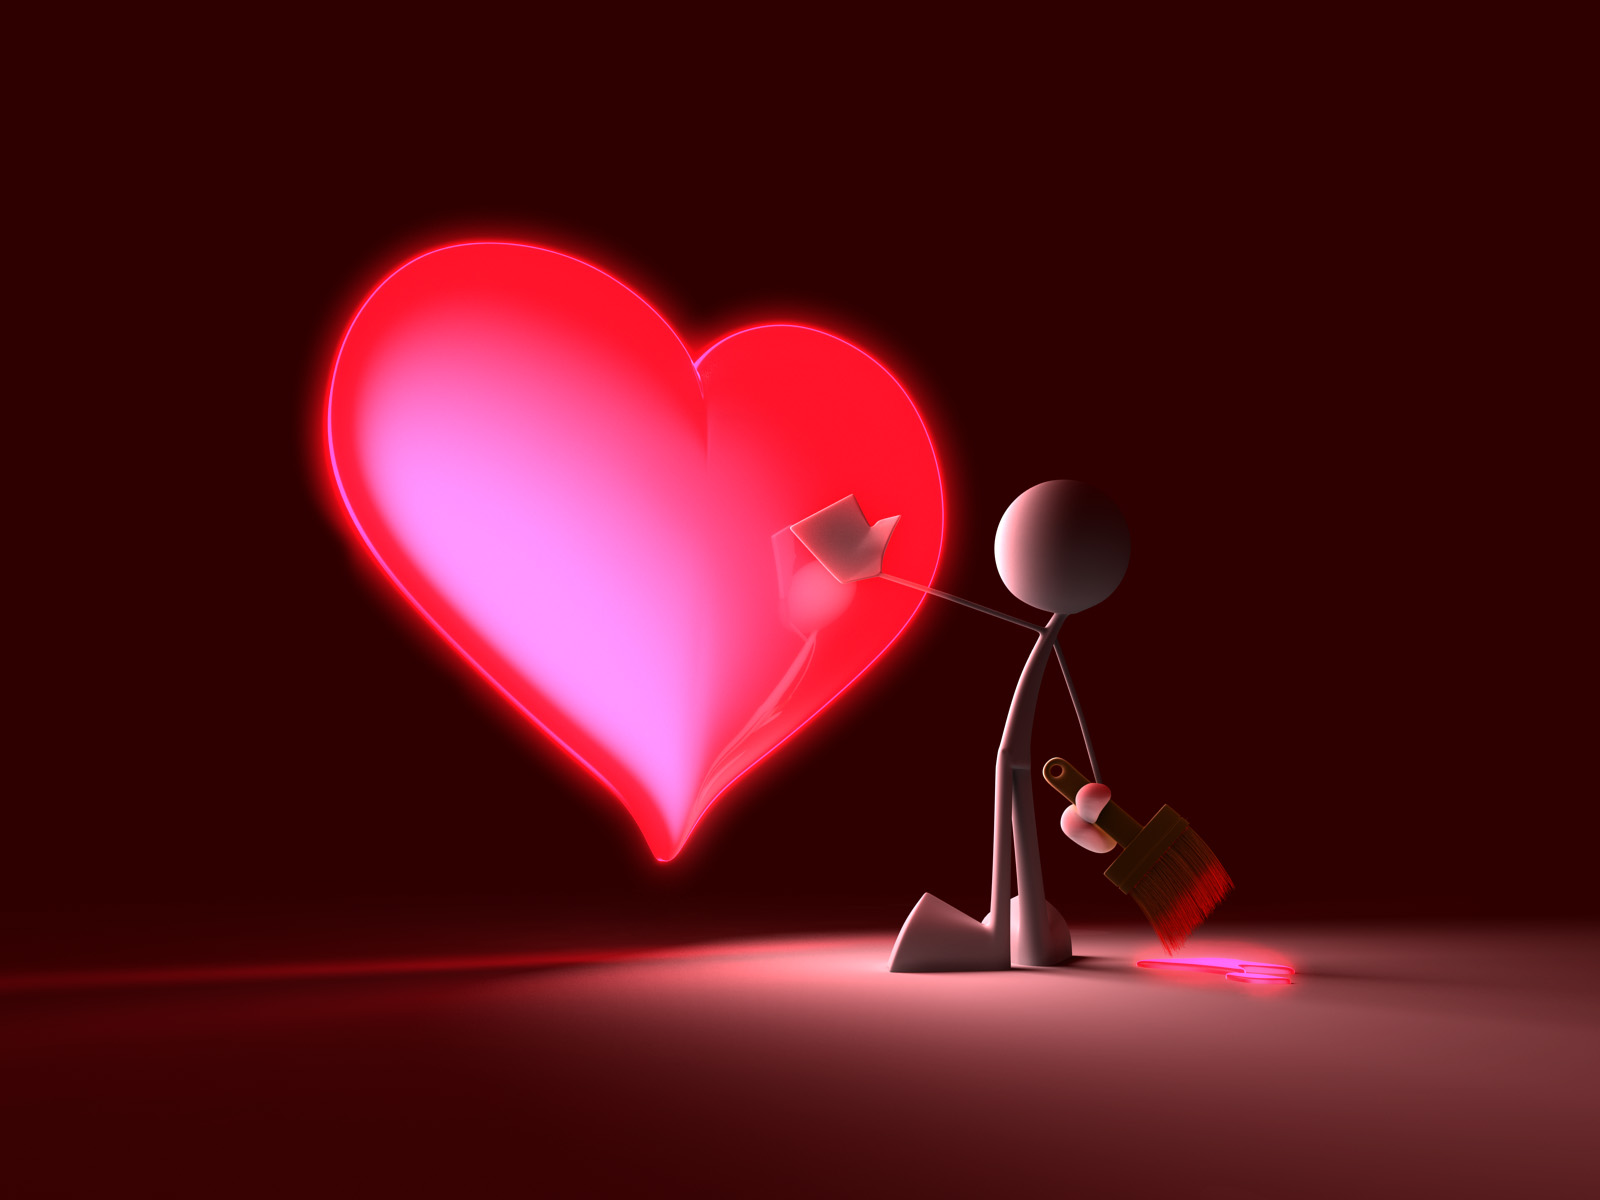 3D man and his heart, wallpaper, love, rabost, glamor.